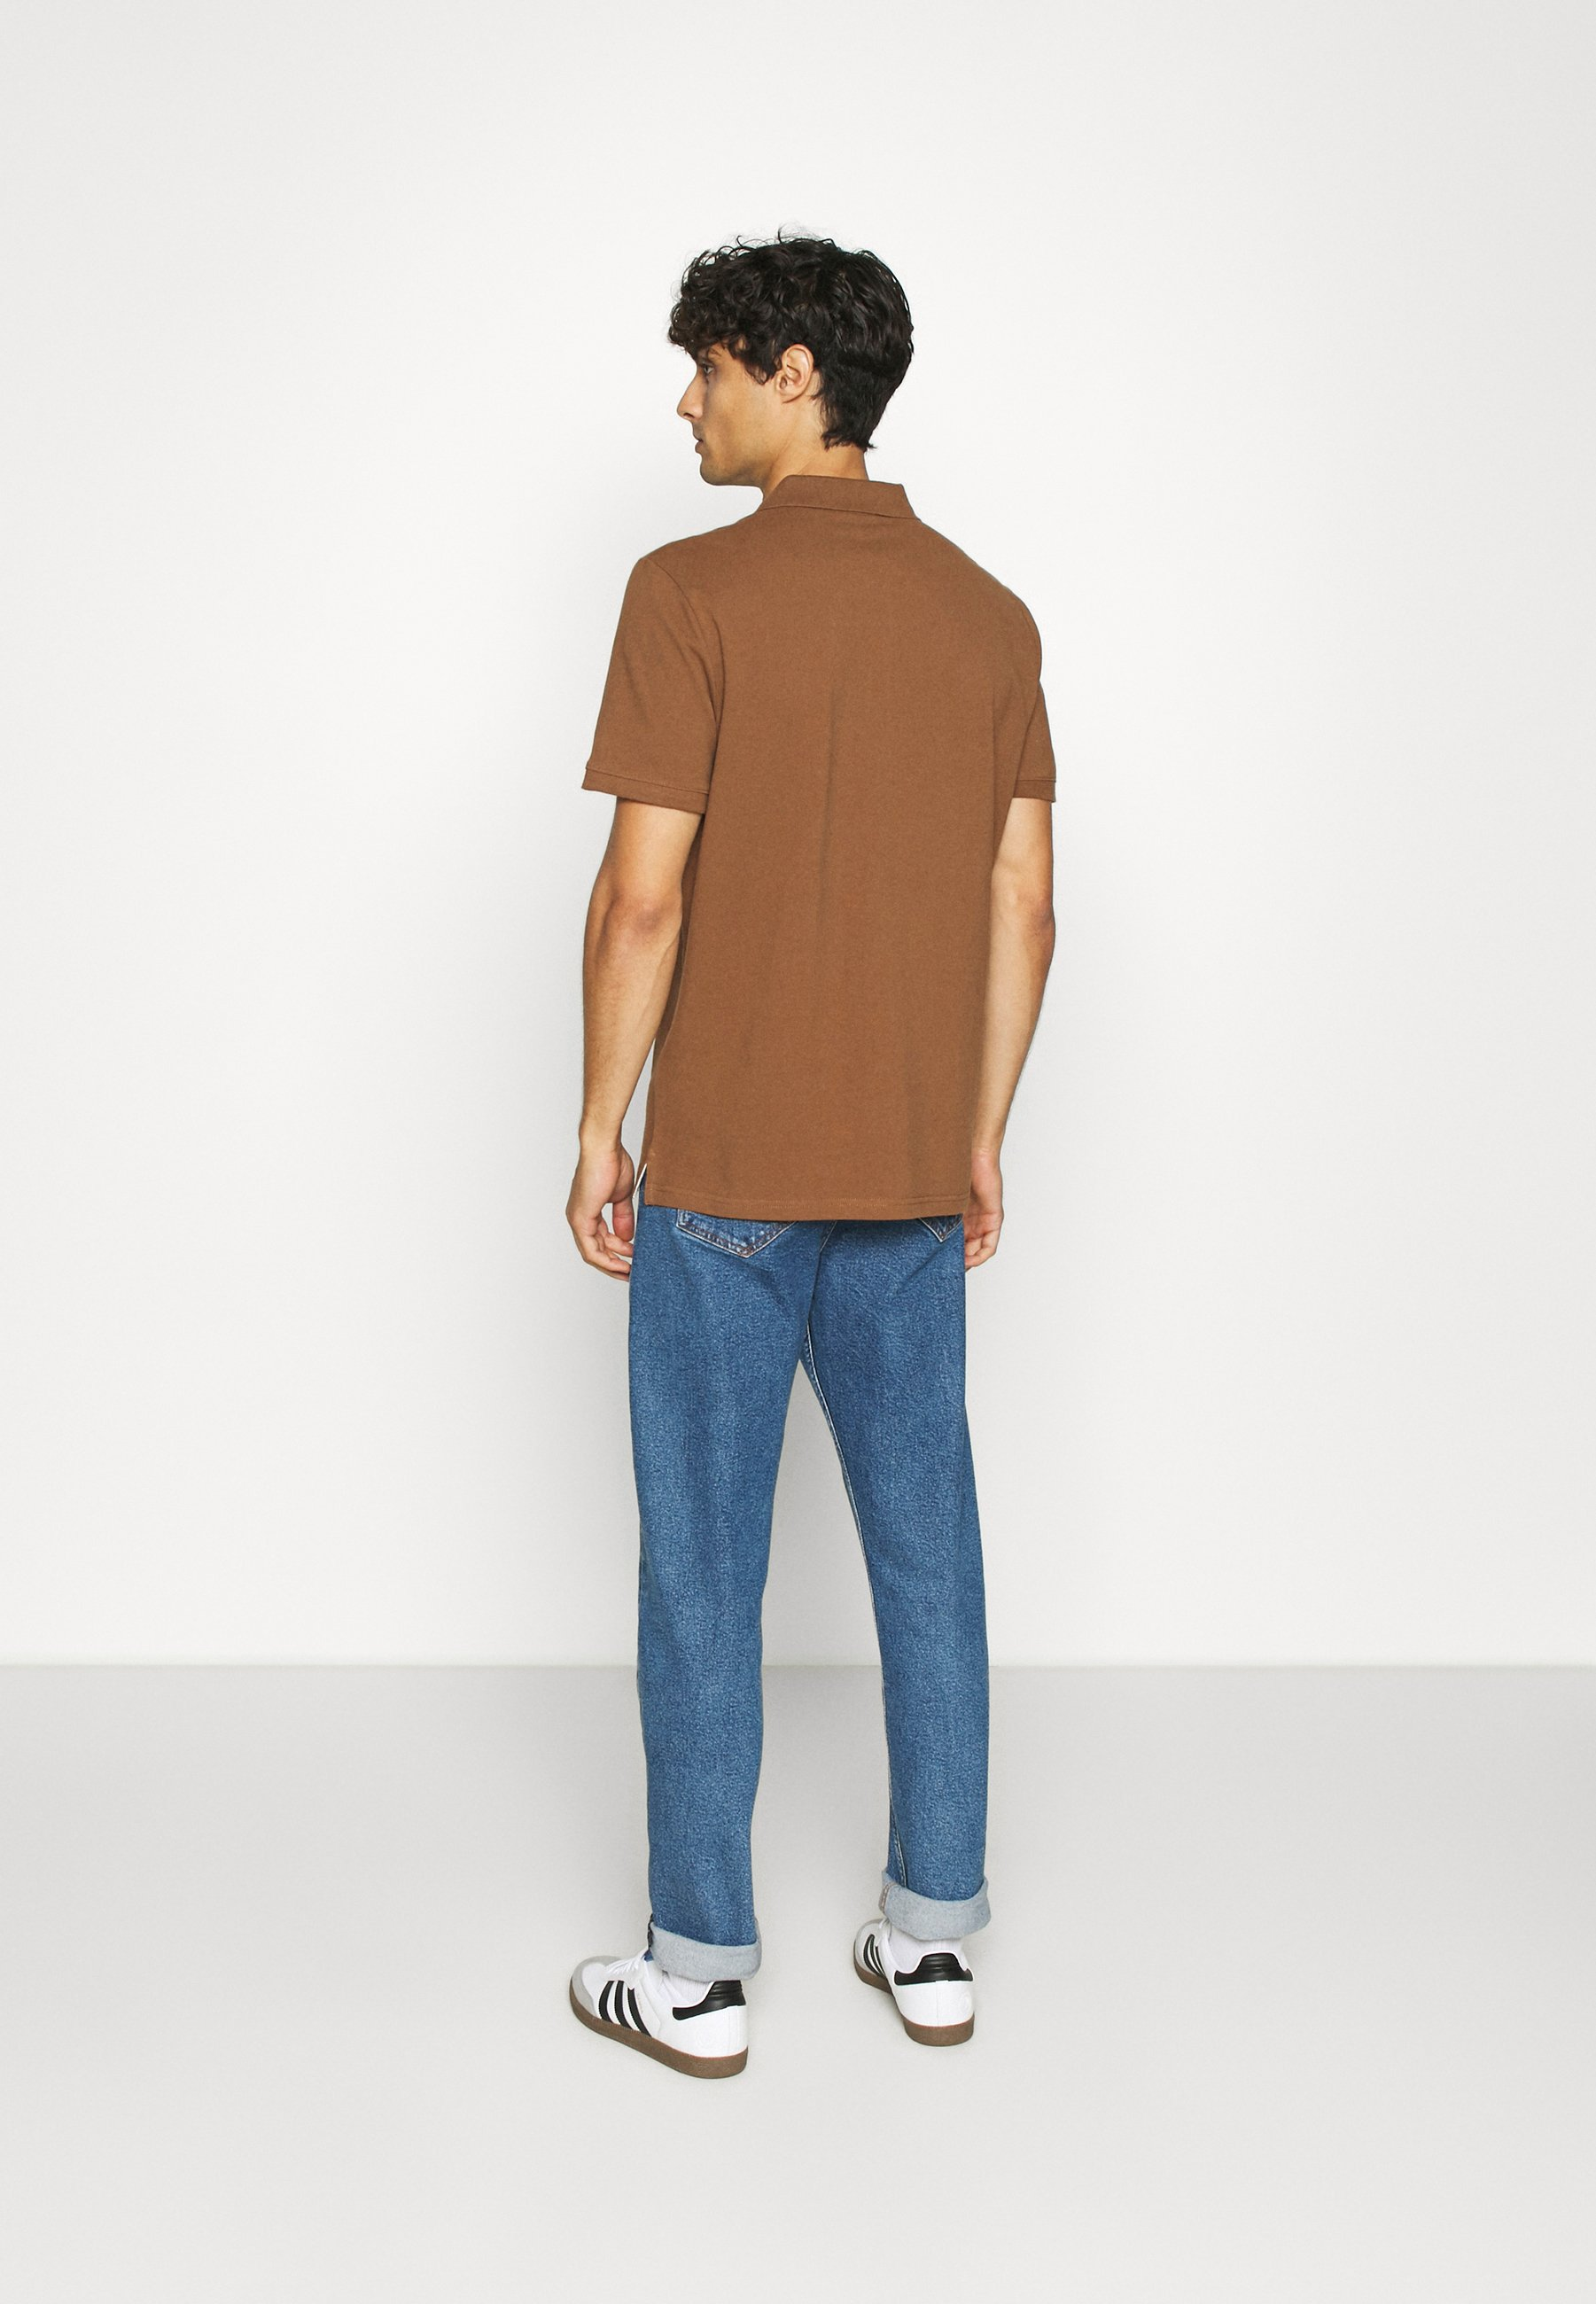 TOM TAILOR WITH CONTRAST - Polo shirt - brown BIQkT